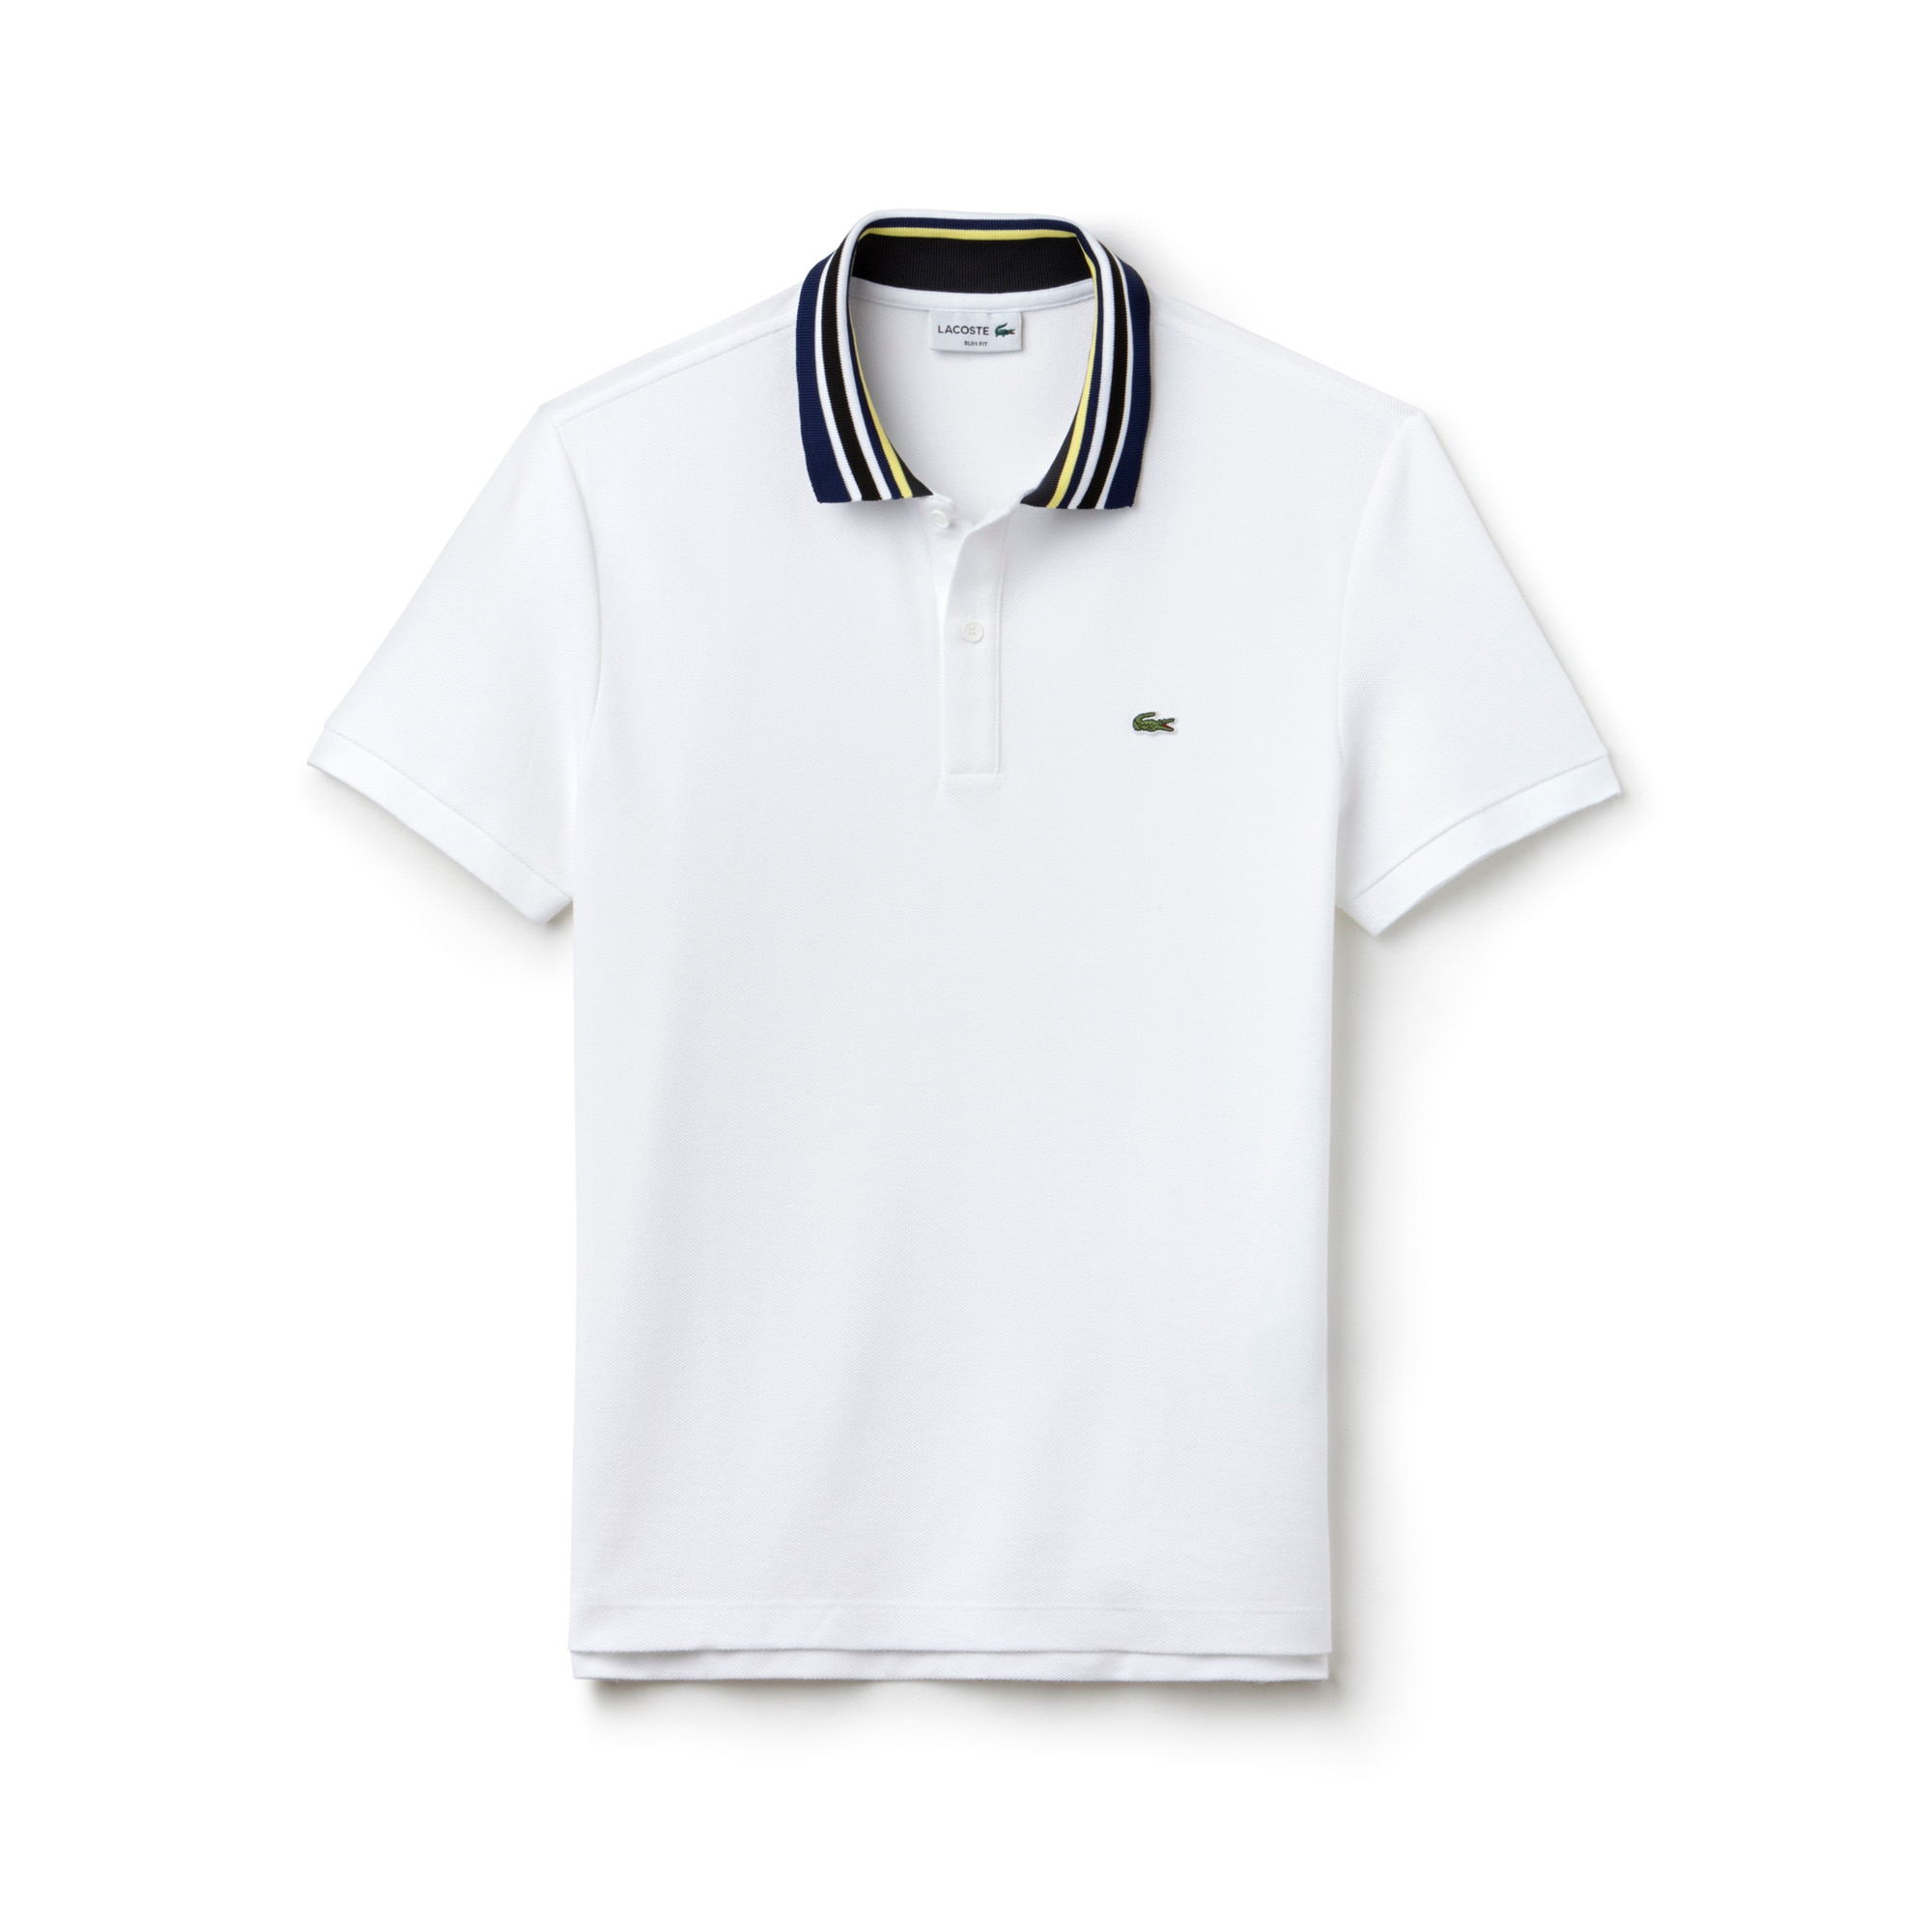 Men's Lacoste Slim Fit Cotton Piqué Polo With Piped Collar